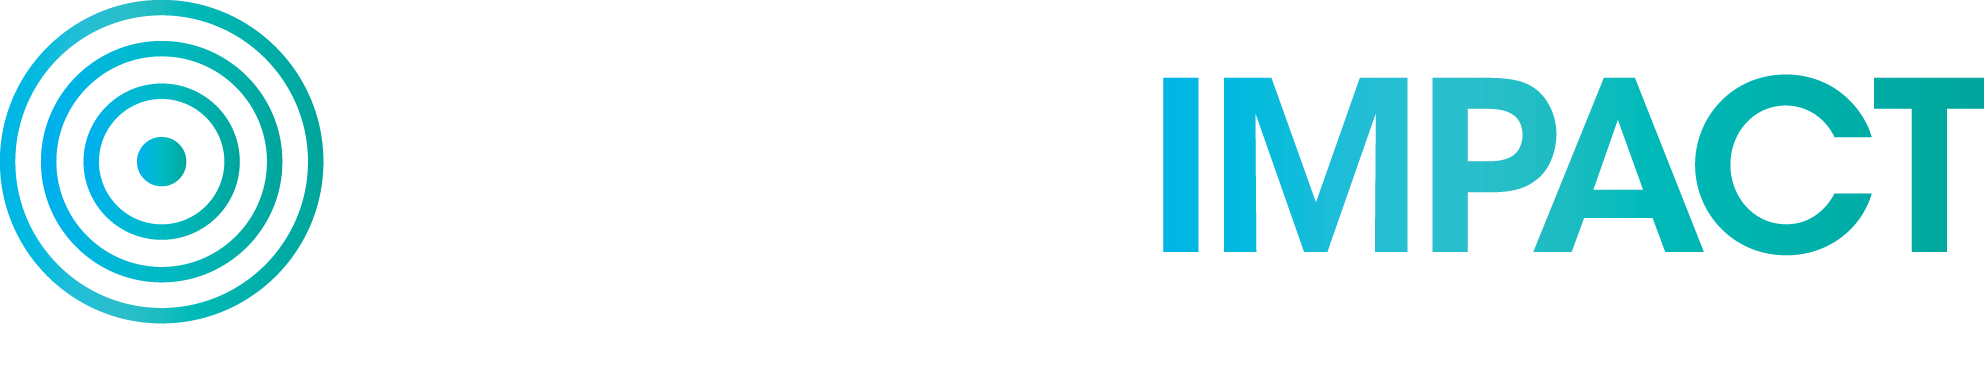 Policy impact Partners